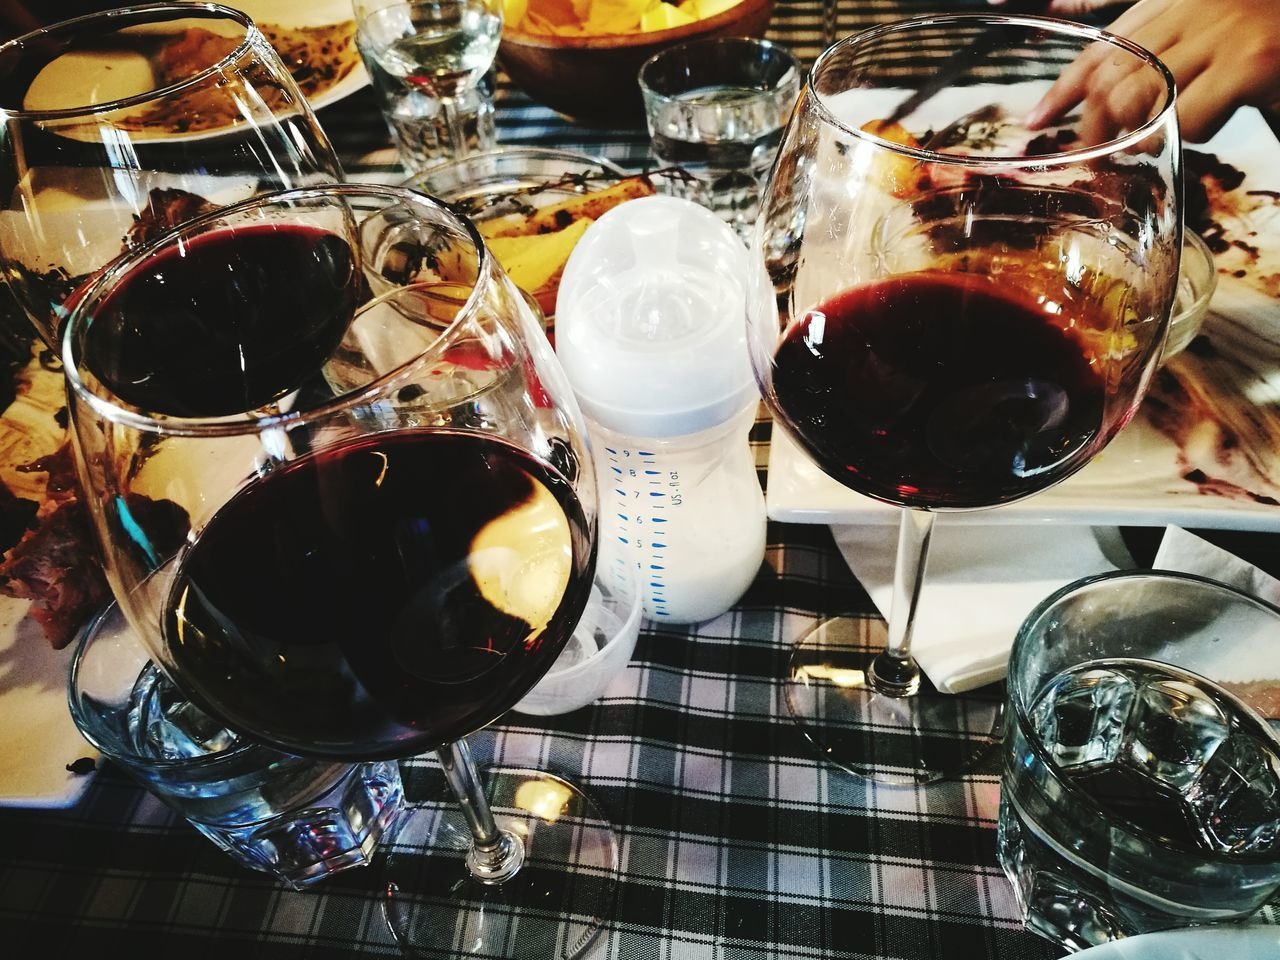 Wineglass Indoors  Wine Drink No People Alcohol Close-up Day Adapted To The City Motherhood Baby Bottle Glasses Friends Eating Together Share The Meal Good Company Table Setting Table Good Friends Being Together Friends And Family Eating